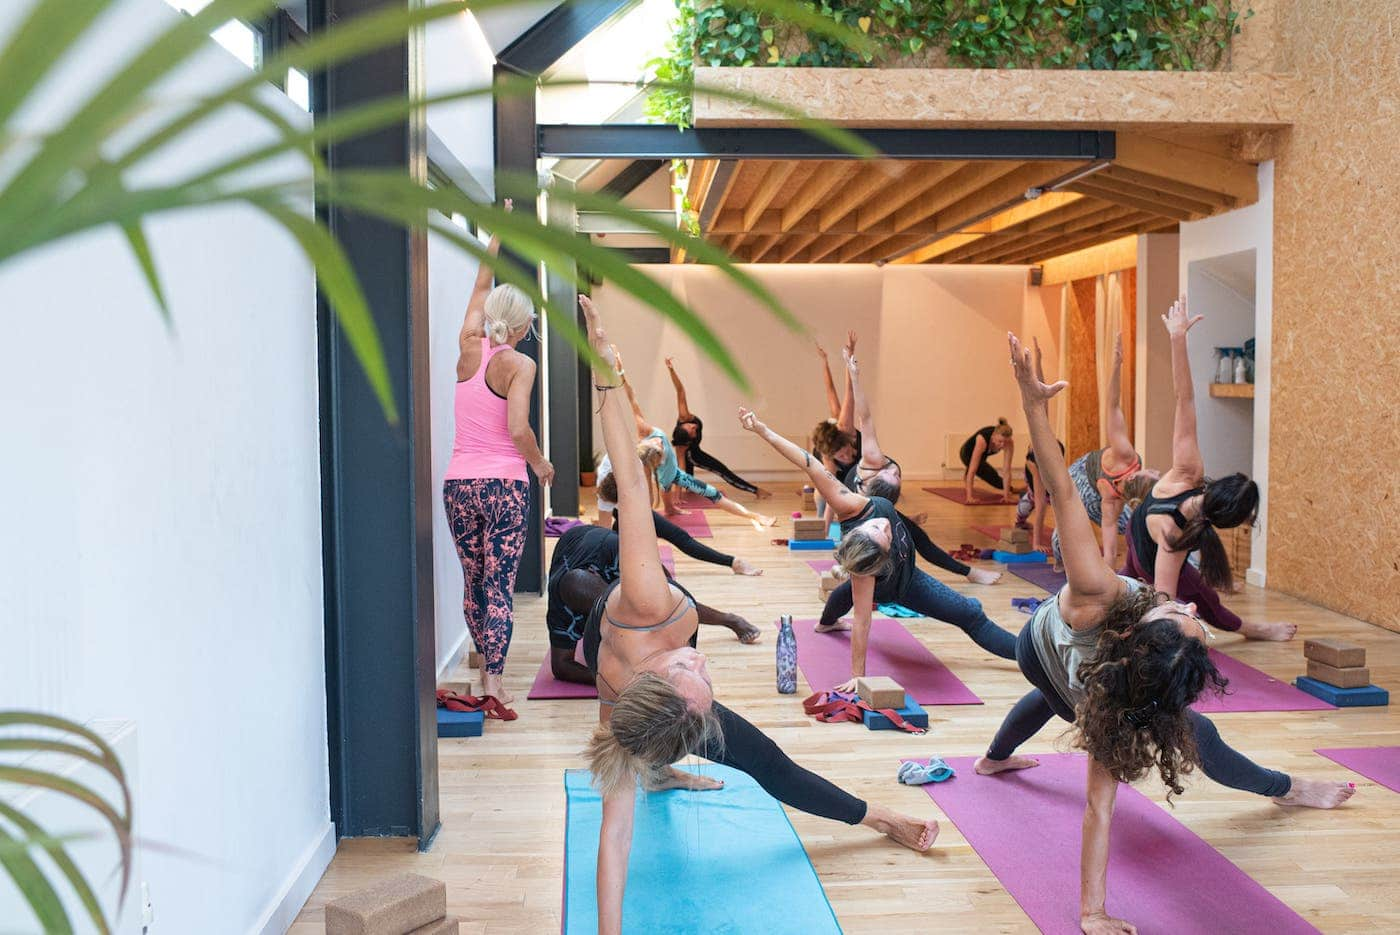 Why is Yoga More Than Just A Fitness Routine